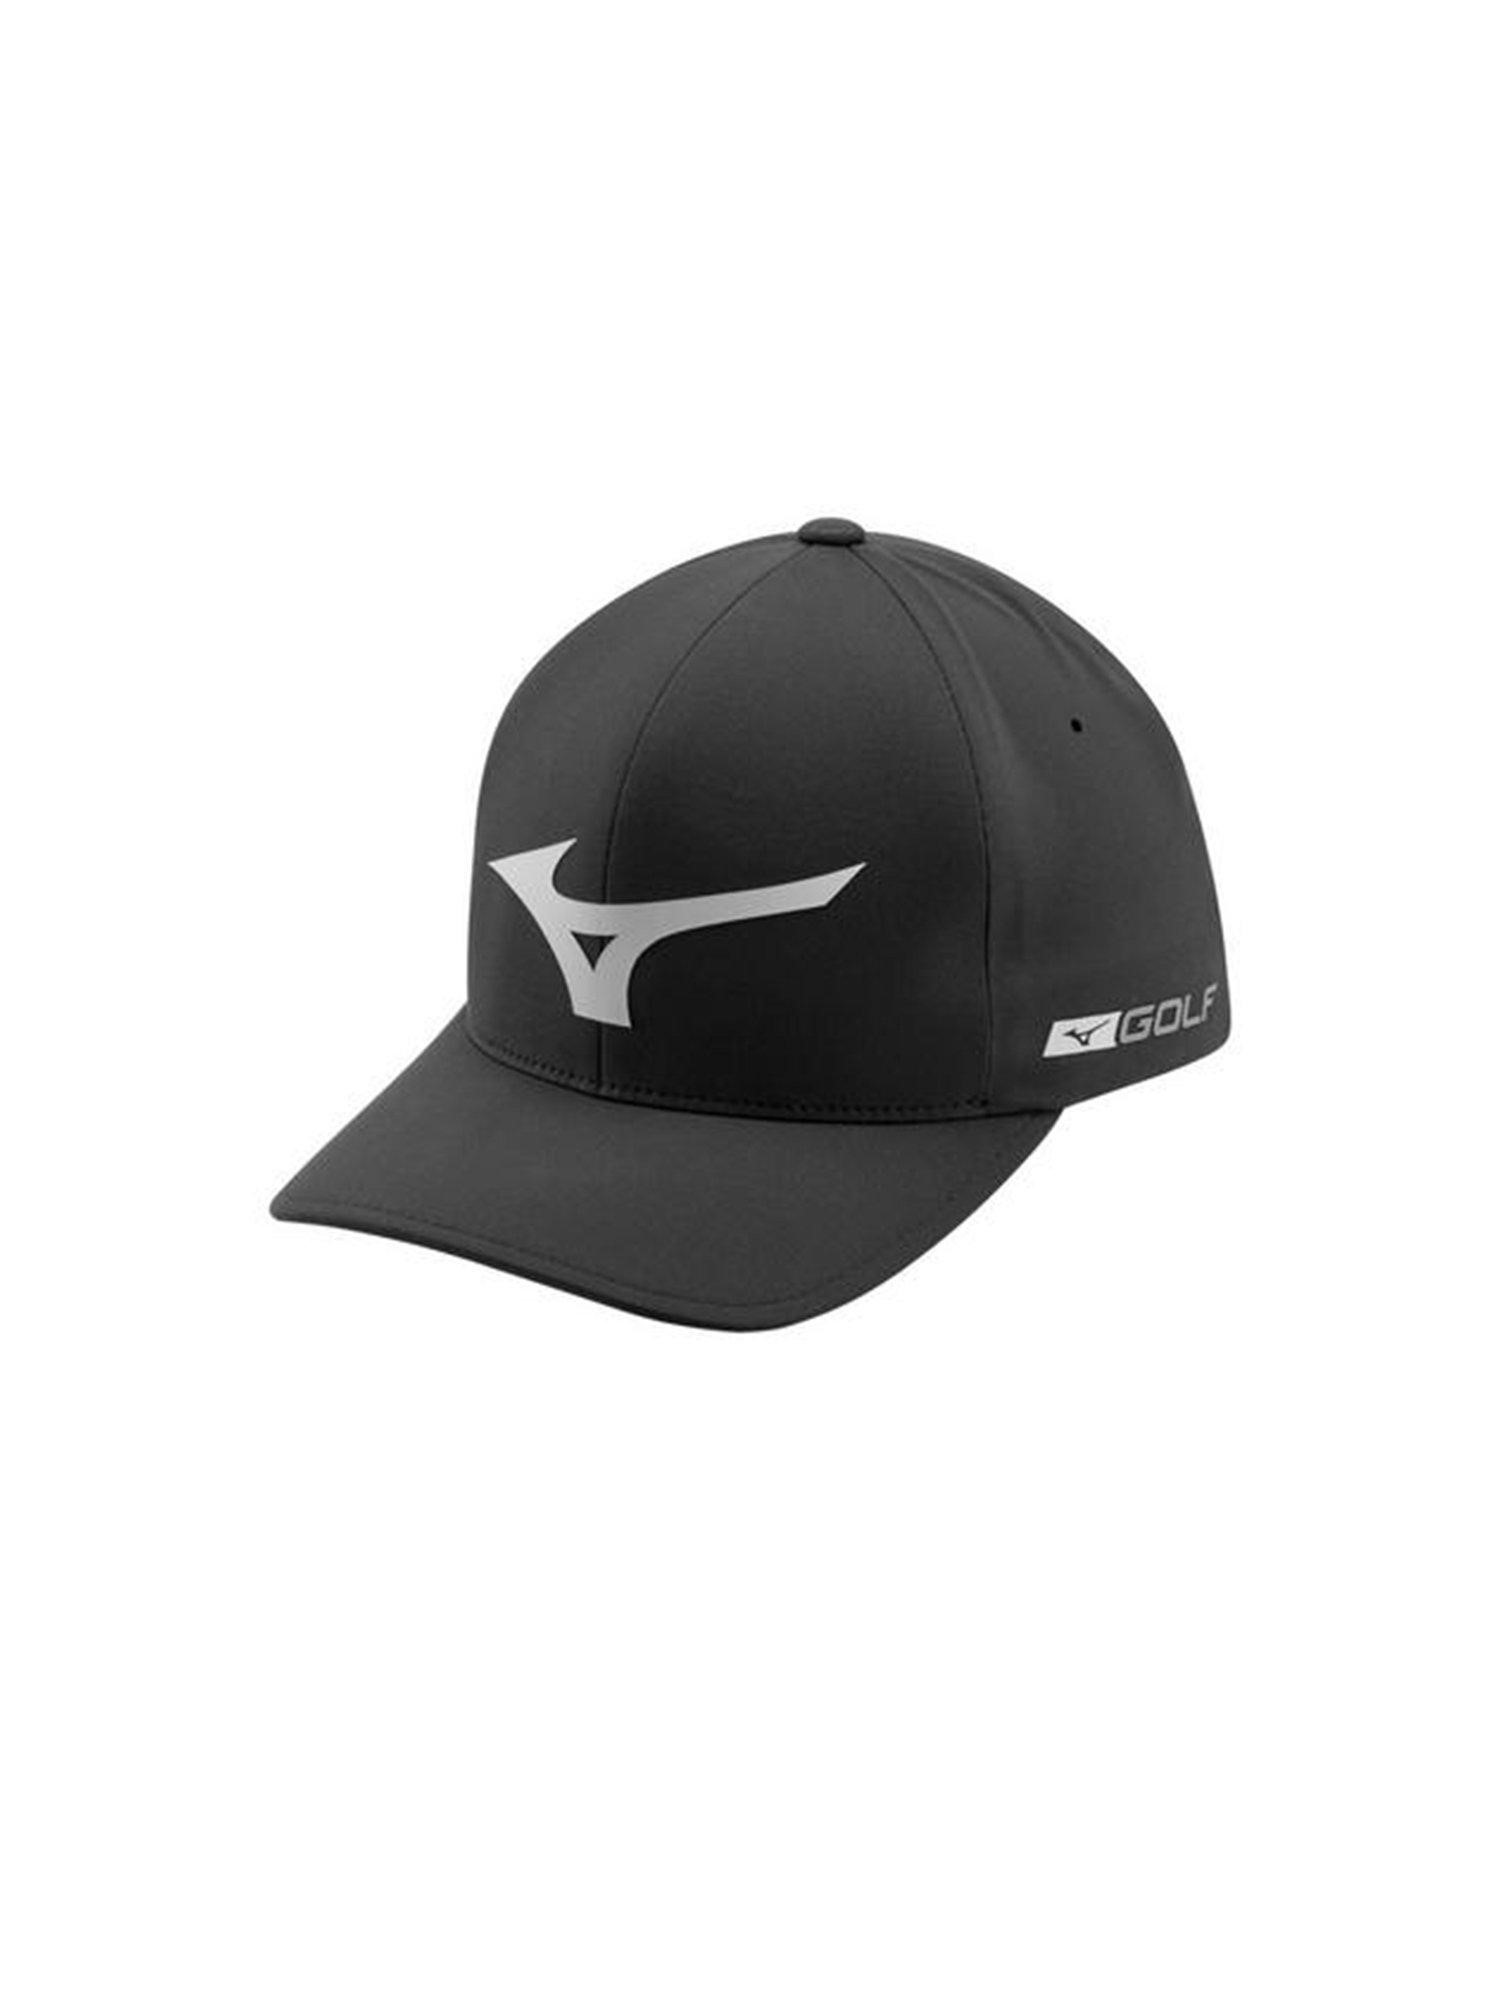 360747add2b53 Mizuno Tour Delta Golf Hat - Walmart.com